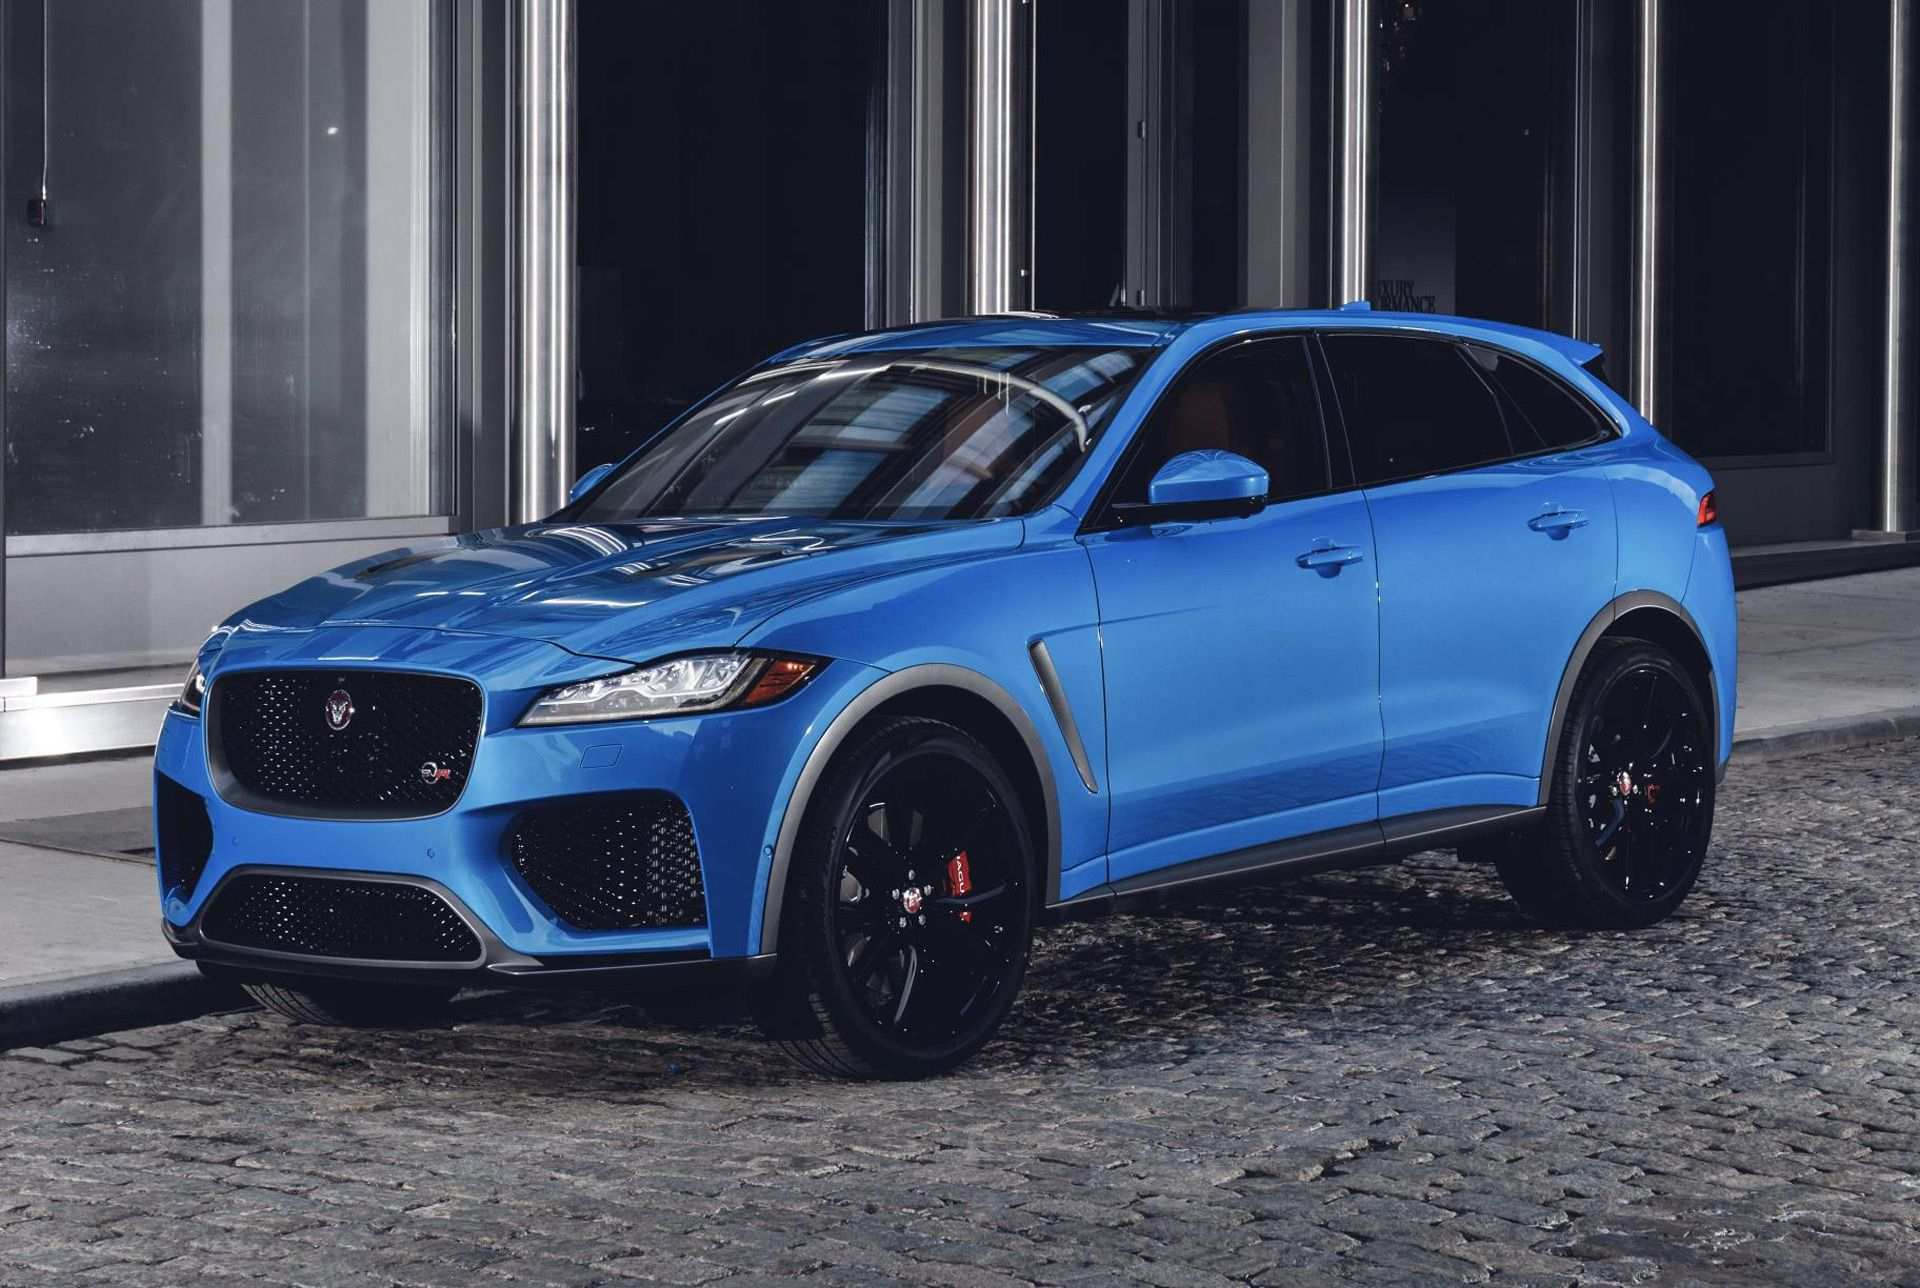 92 All New 2020 Jaguar F Pace Pricing with 2020 Jaguar F Pace